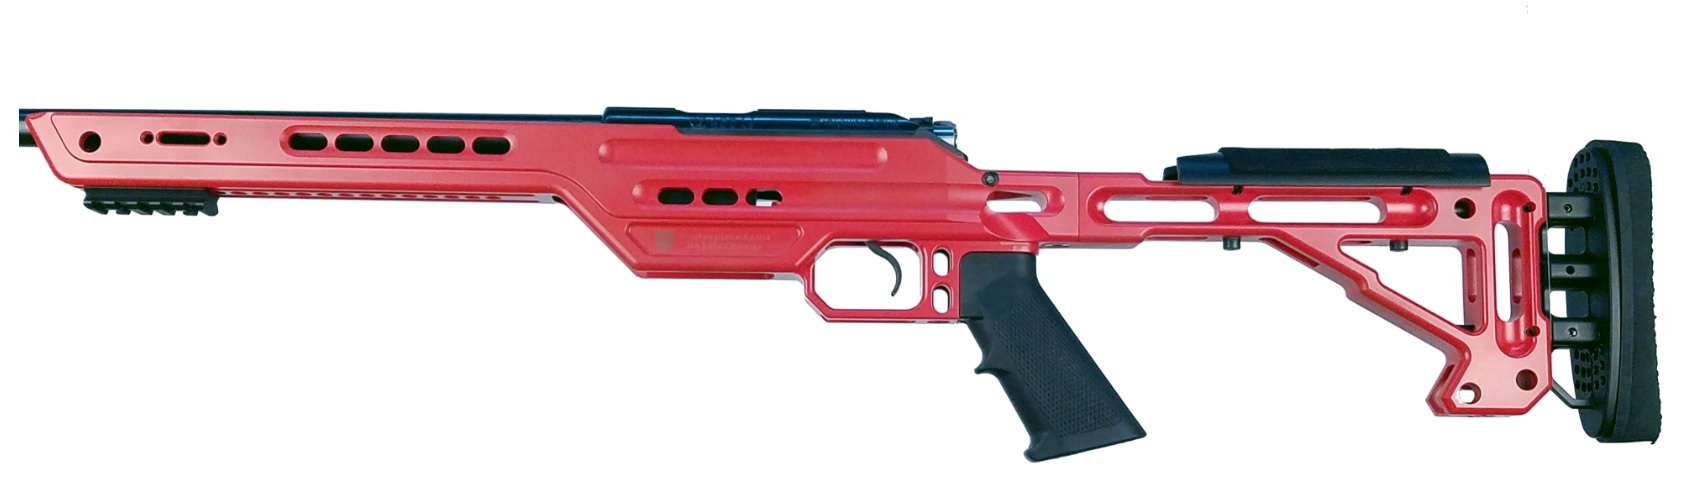 MasterPiece Arms Introduces the MPA BA CZ-455 Chassis